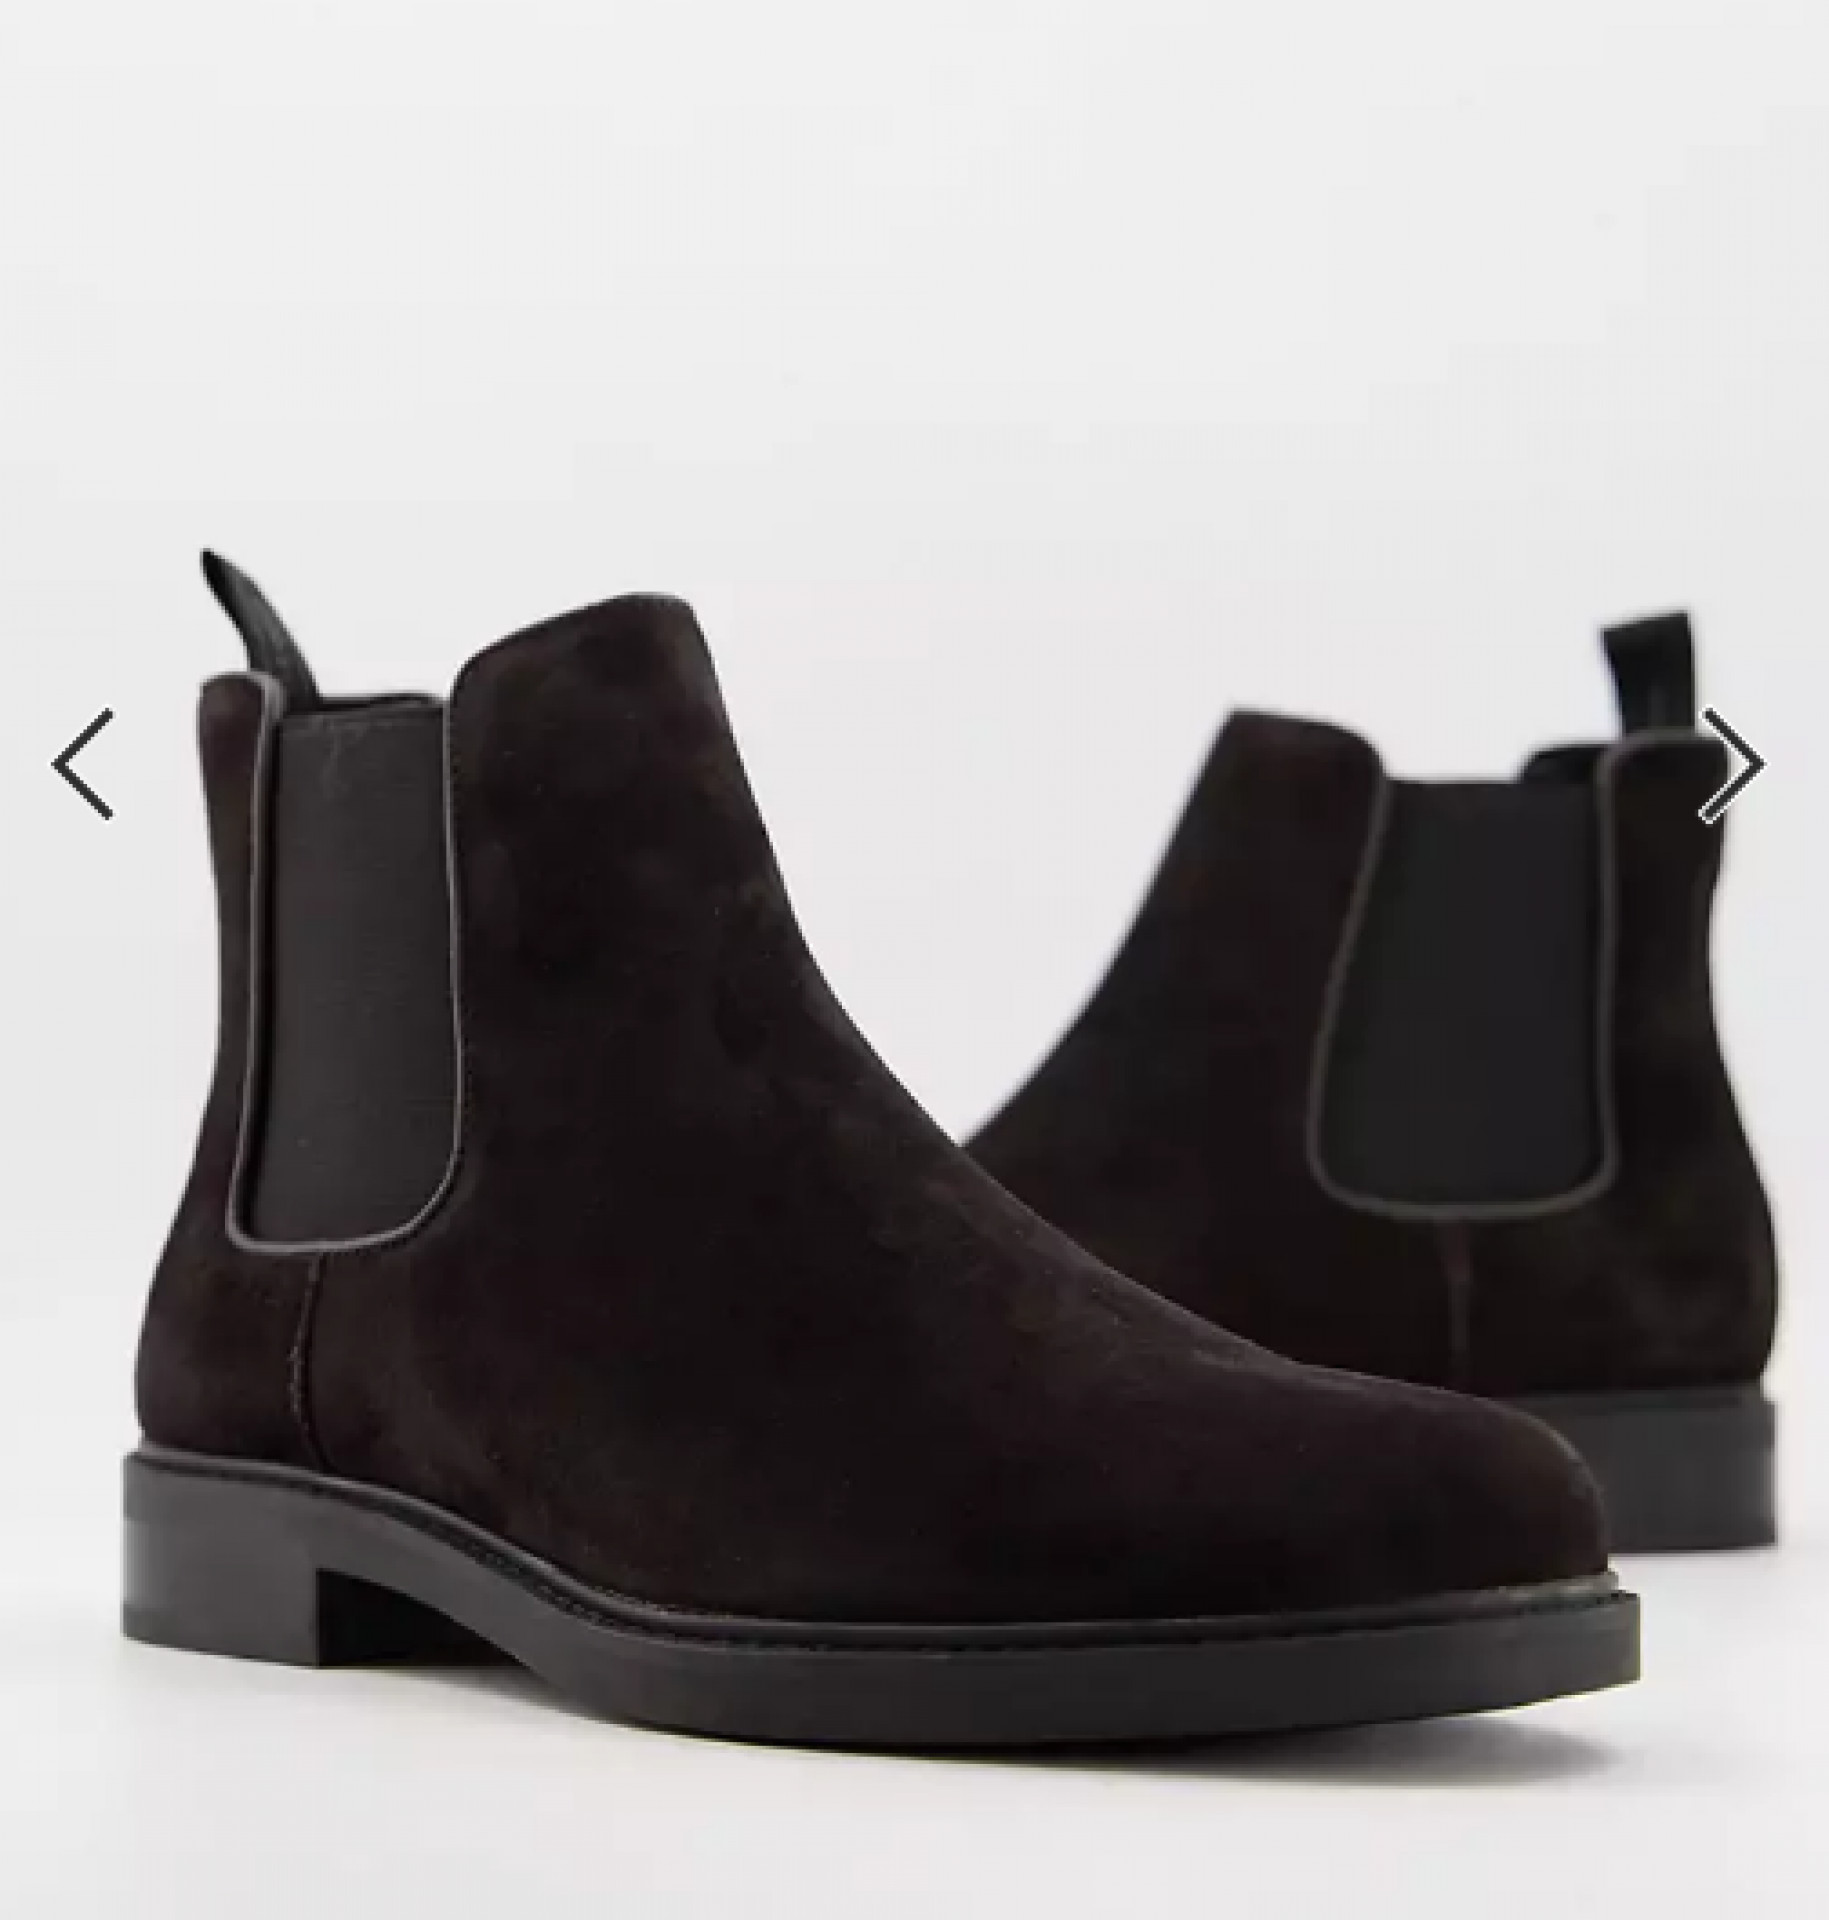 Calvin Klein fintan chelsea boots in brown leather